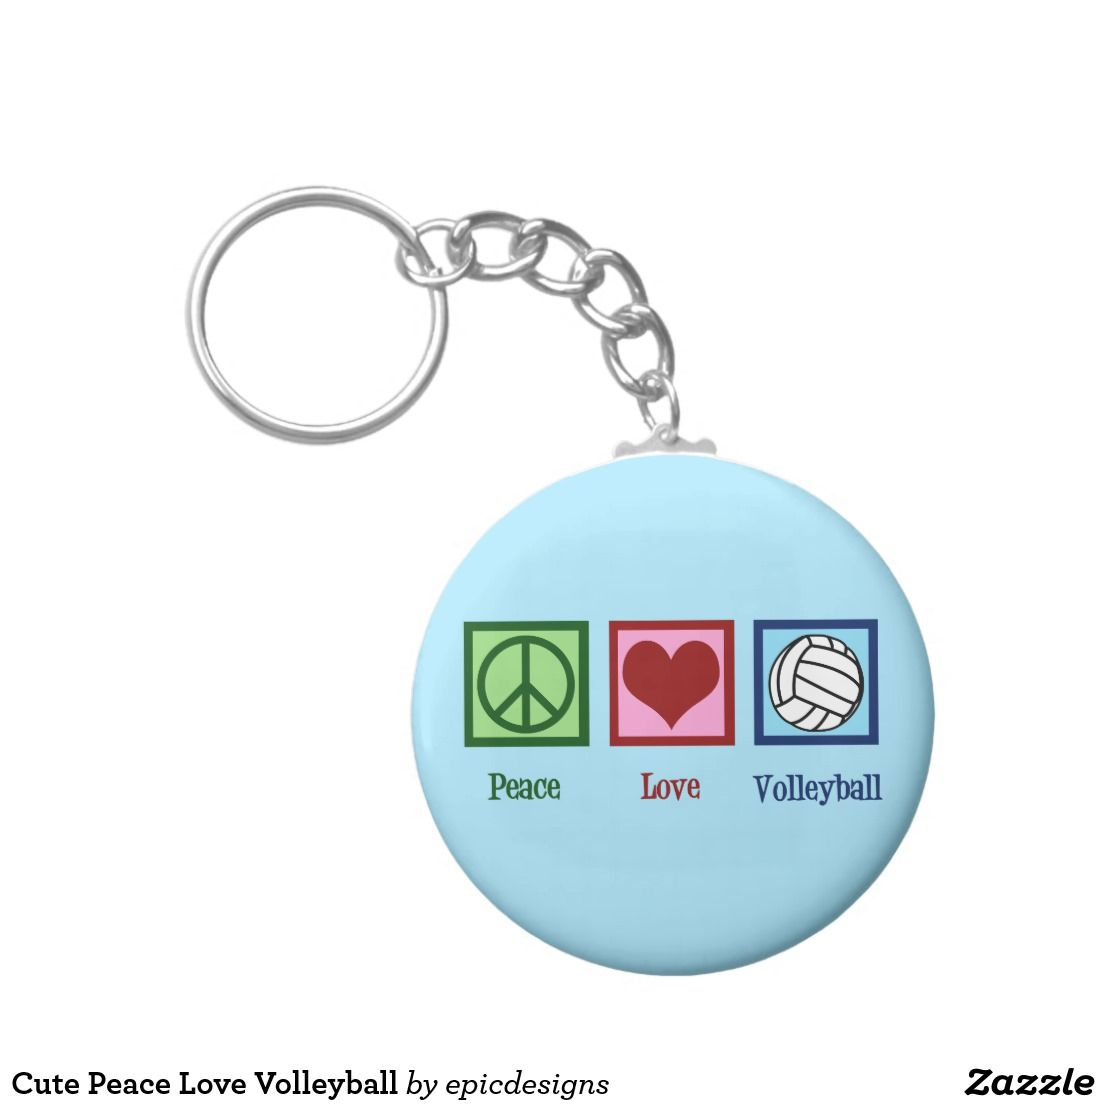 Cute Peace Love Volleyball Keychain Volleyball Volleyballcoach Volleyballplayer Beachvolleygirl Volleyballgirl Peace And Love Keychain Keychain Gift